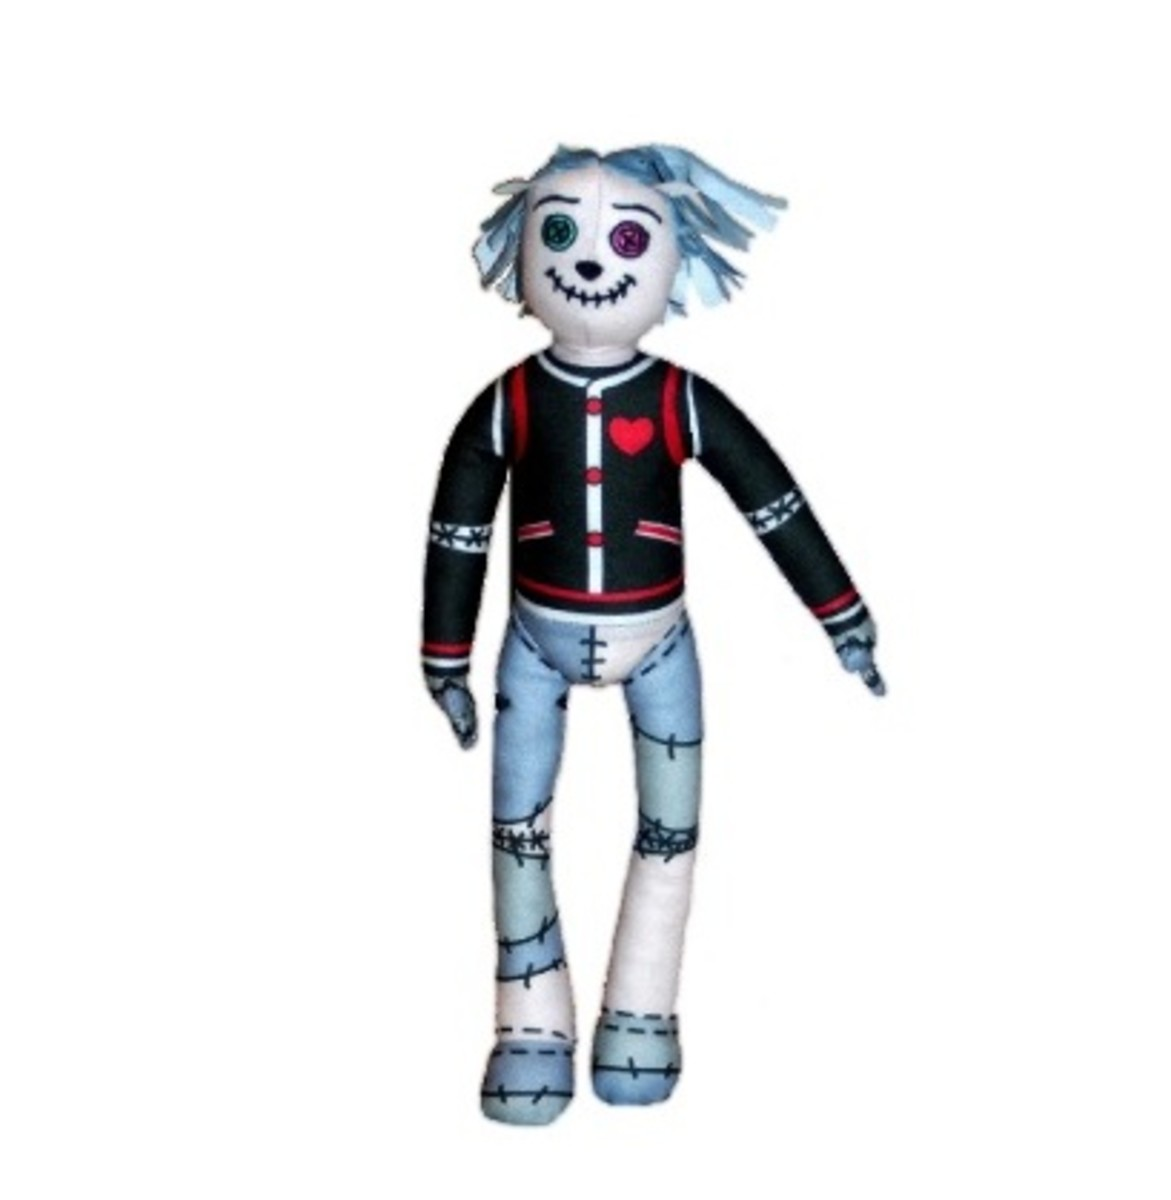 the-hoodude-voodoo-doll-from-monster-high